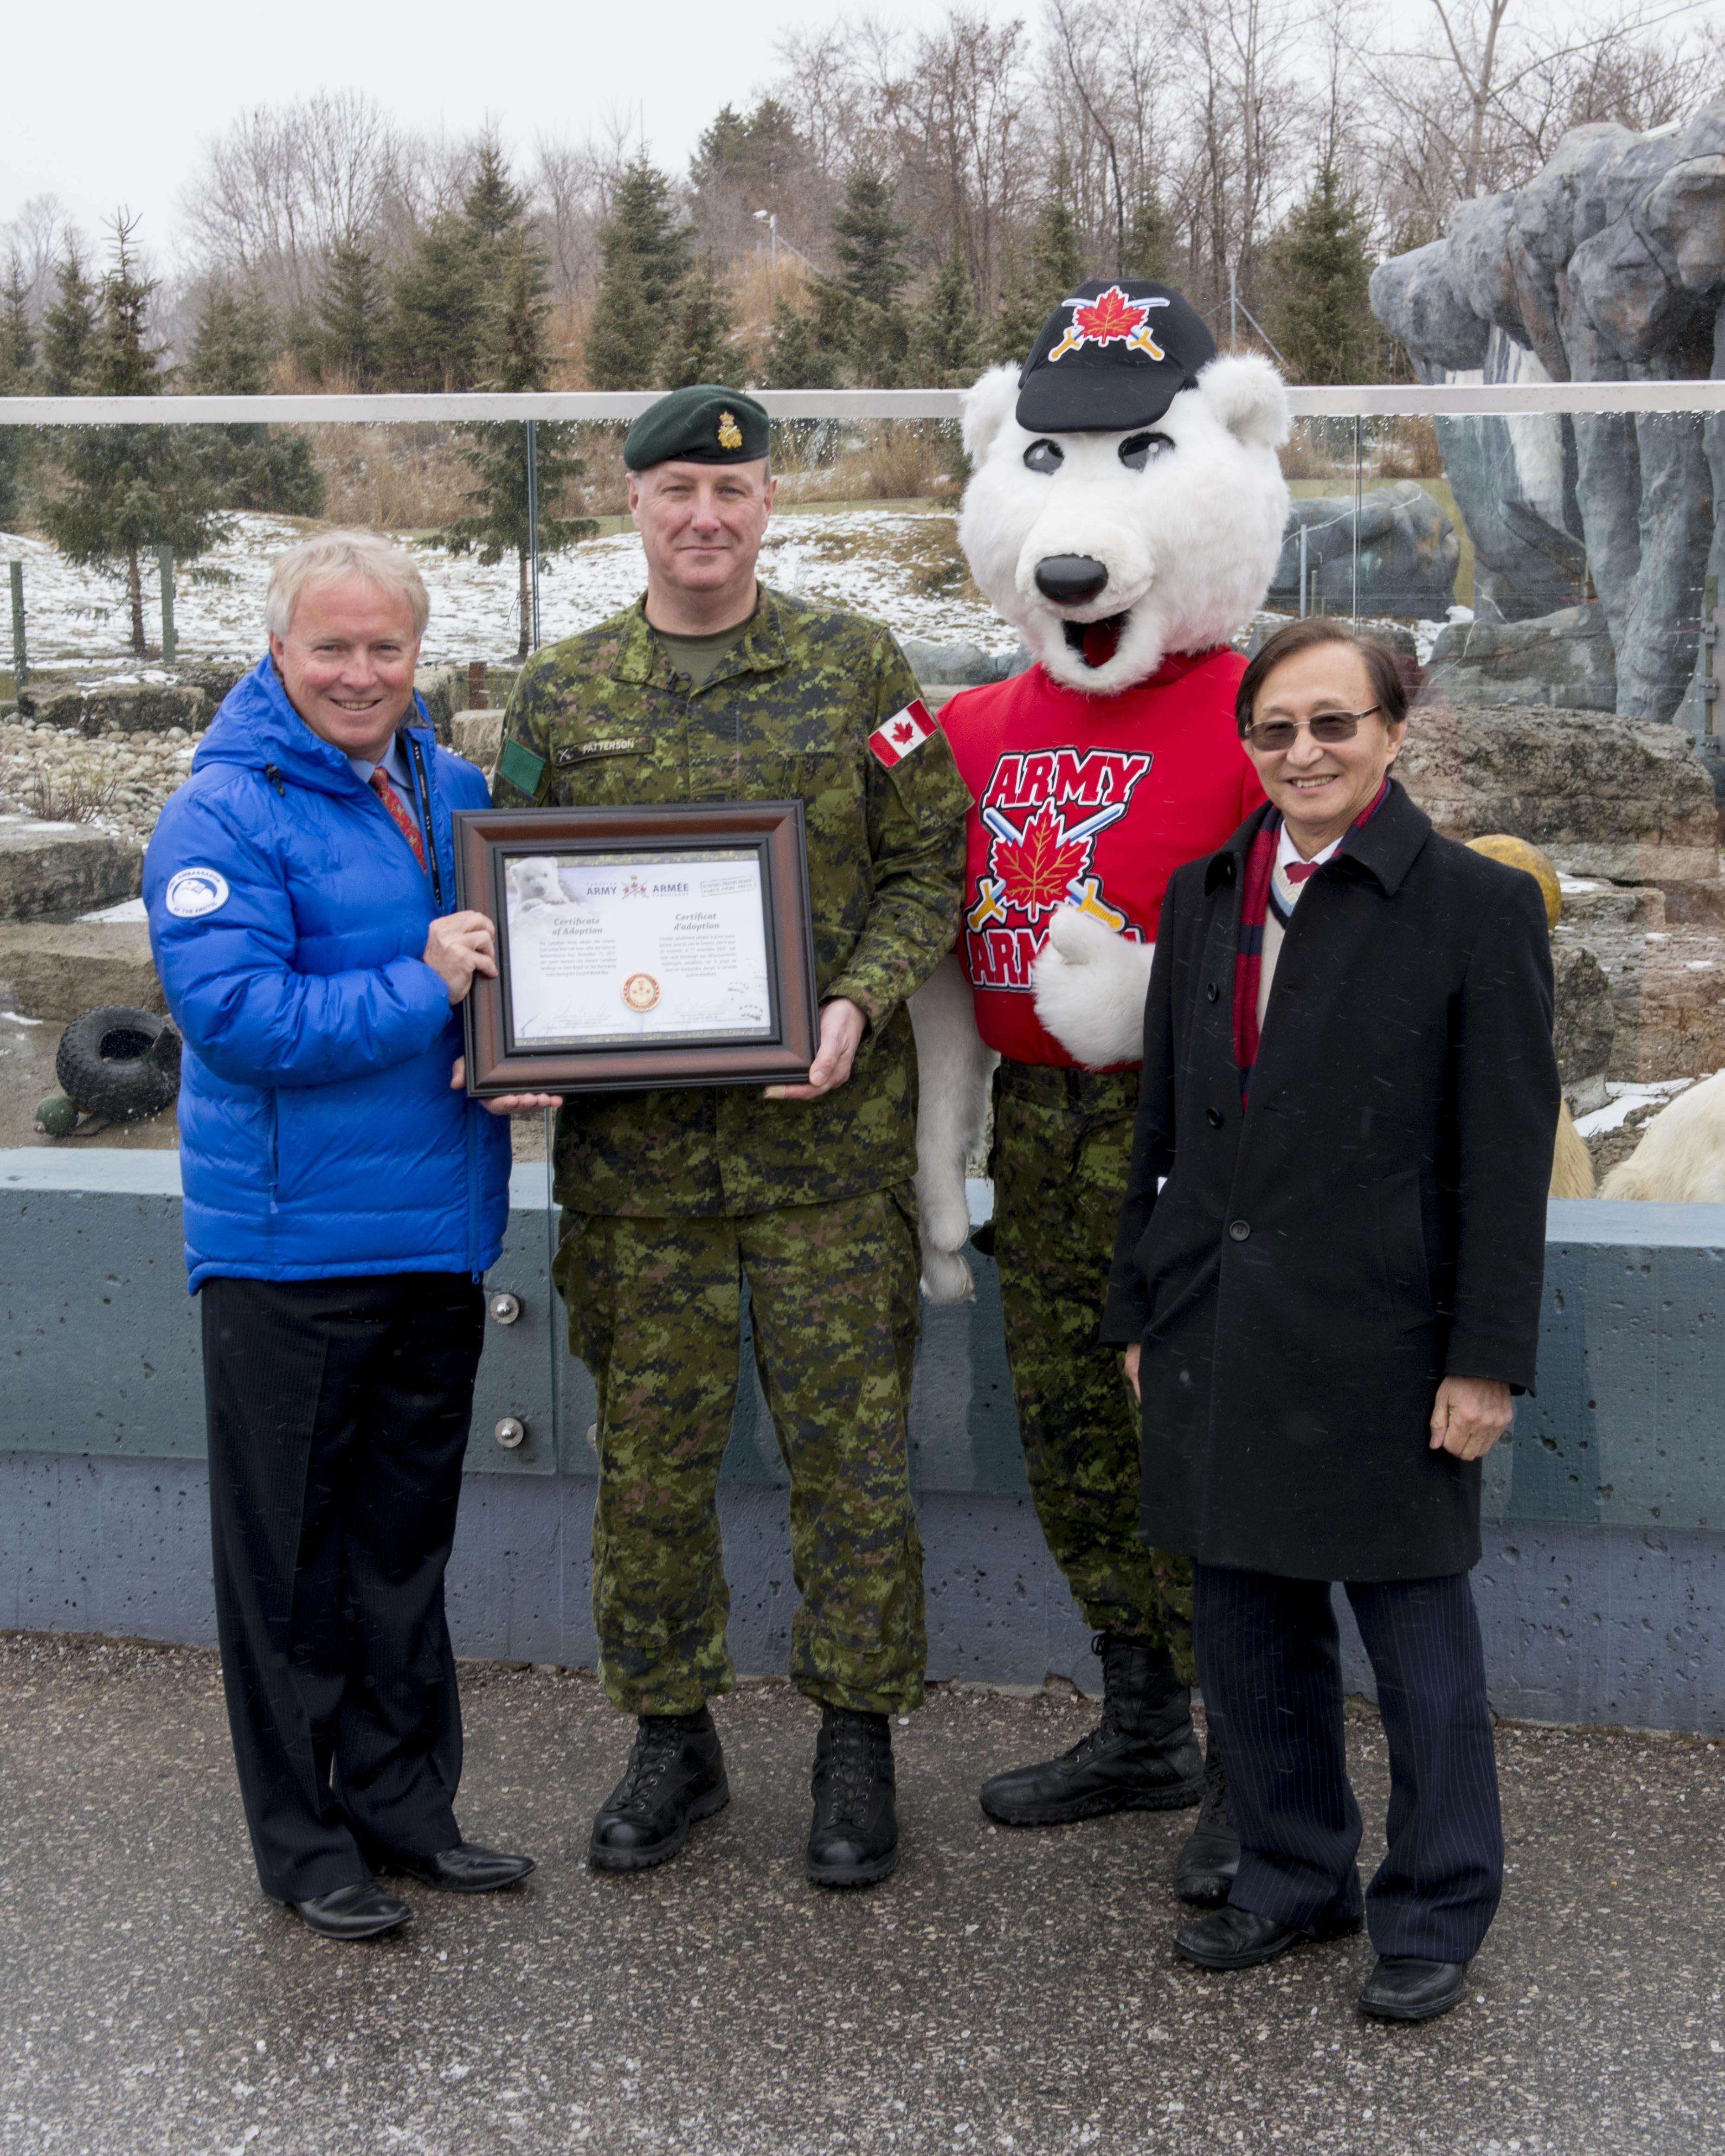 Brigadier-General David Patterson, Deputy Commander of the 4th Canadian Division, presents a certificate of adoption to Toronto Zoo officials John Tracogna, CEO, Toronto Zoo (left) and Raymond Cho, Chair, (right) at the Toronto Zoo during the welcoming of Private Juno, the polar bear cub, at Toronto Zoo on February 25, 2016. Photo by: MCpl Precious Carandang, 4th Canadian Division Public Affairs 2016 DND-MDN Canada.